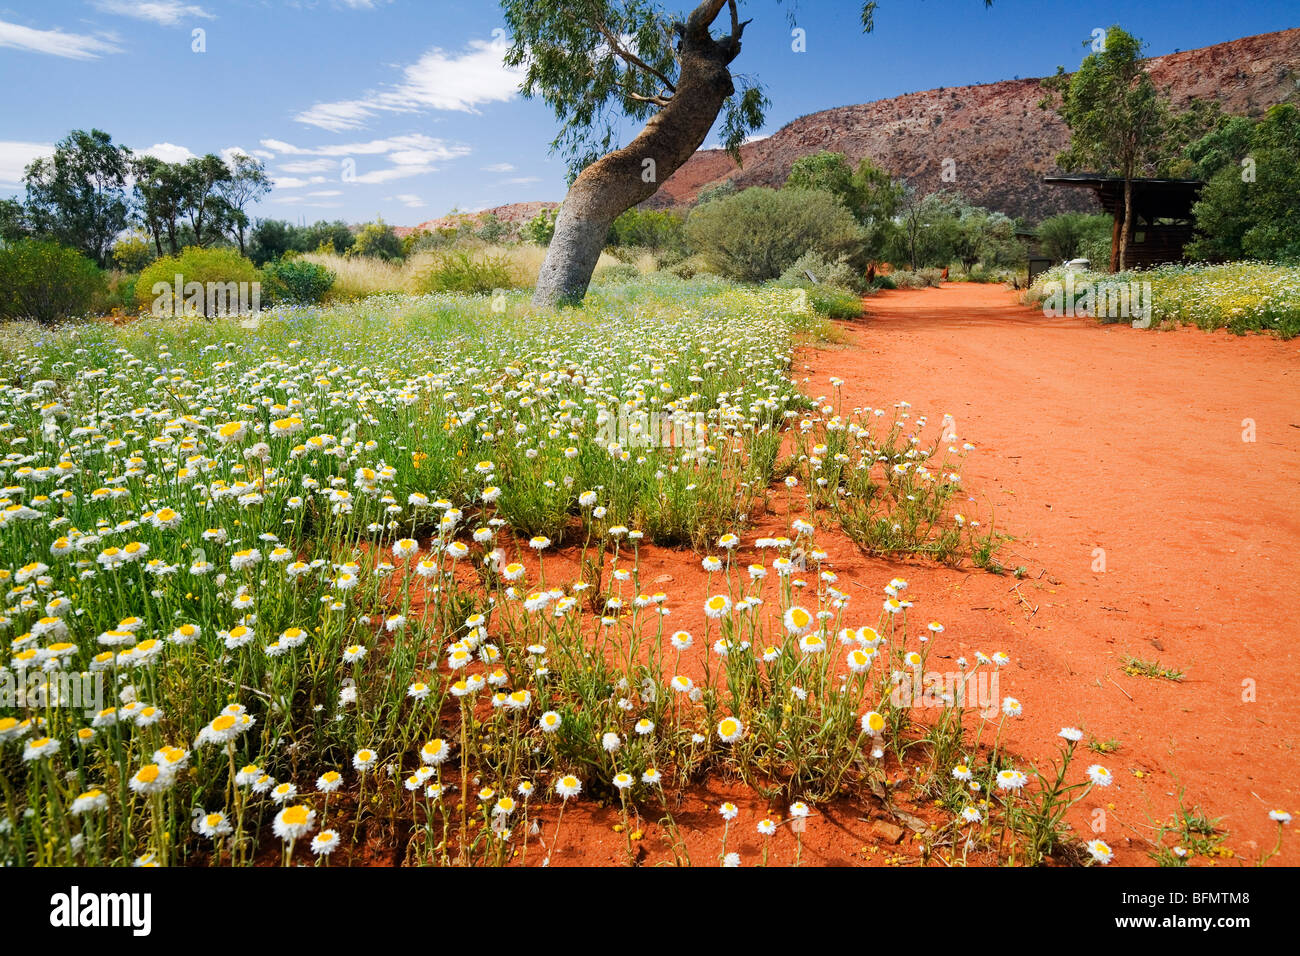 Australia, Northern Territory, Alice Springs.  Wildflowers in the Alice Springs Desert Park. - Stock Image